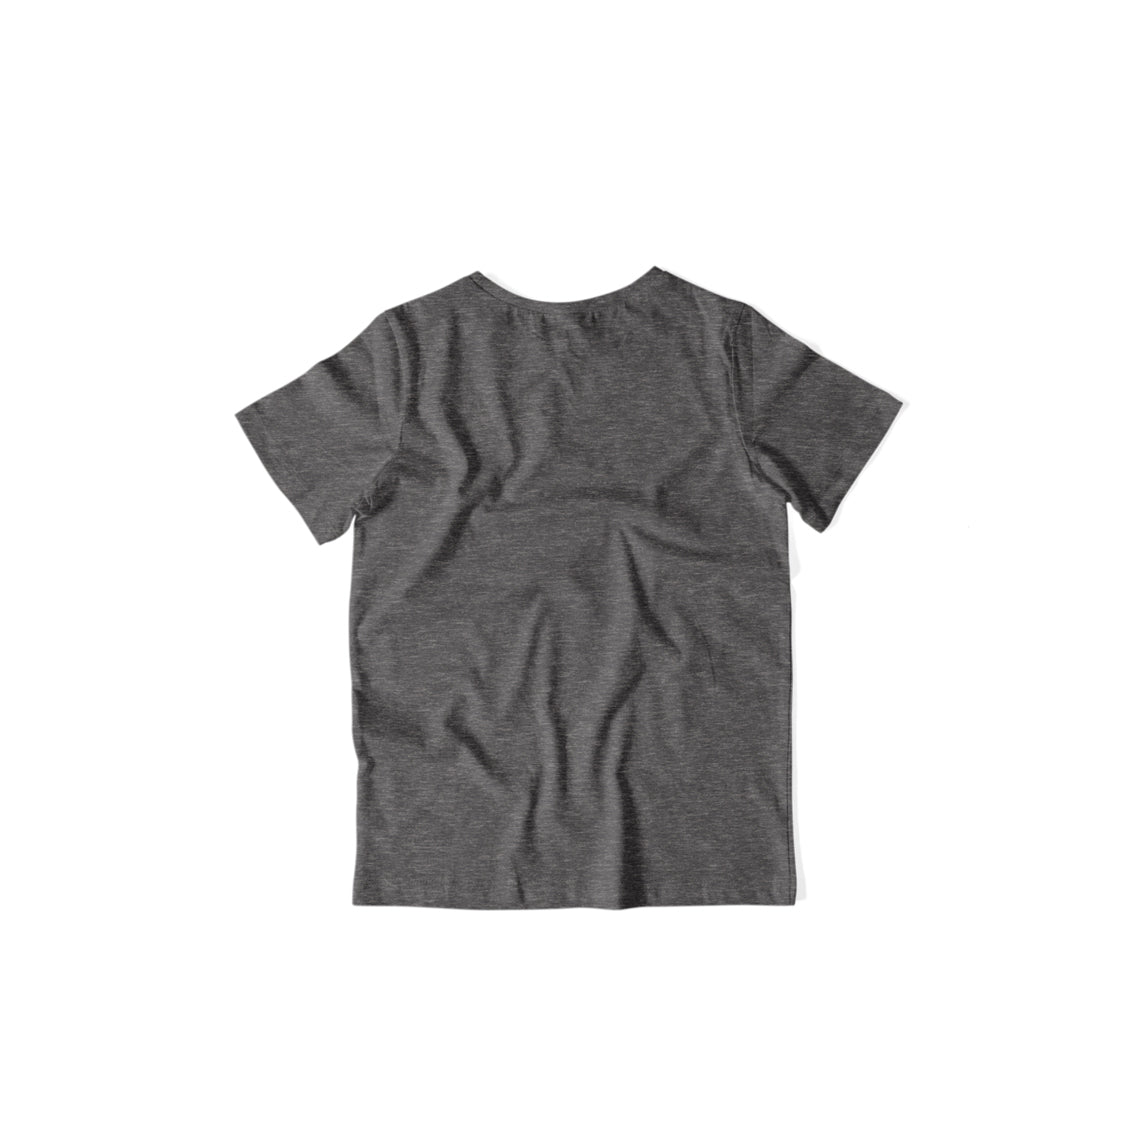 Kids's Basics - Charcoal Grey Half Sleeves Round Neck T-shirt